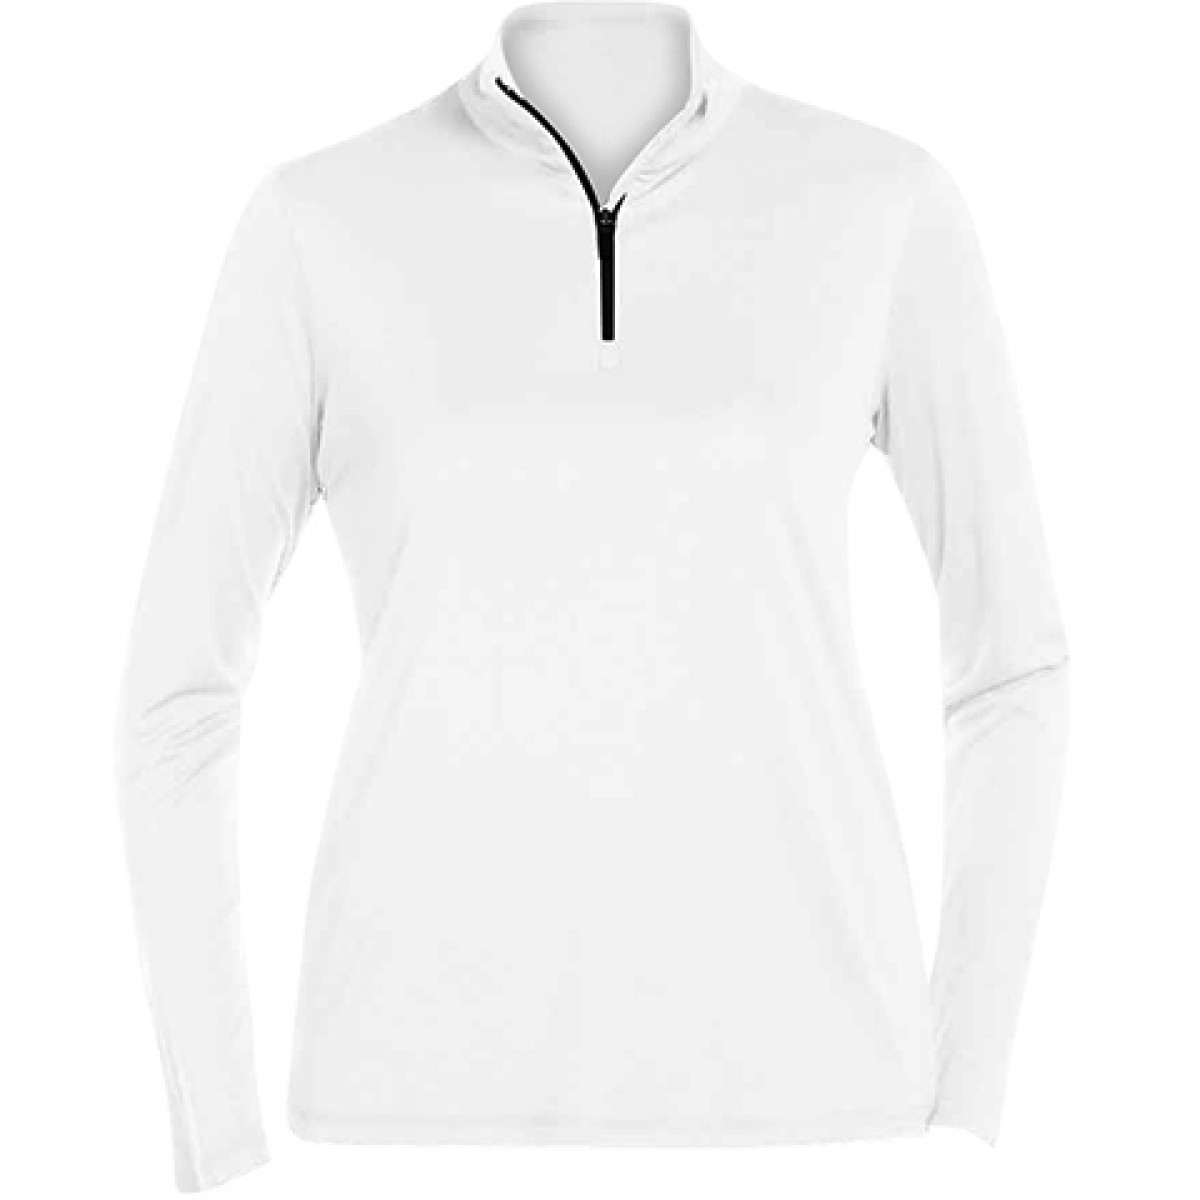 Ladies Quarter-Zip Lightweight Pull Over -White-M